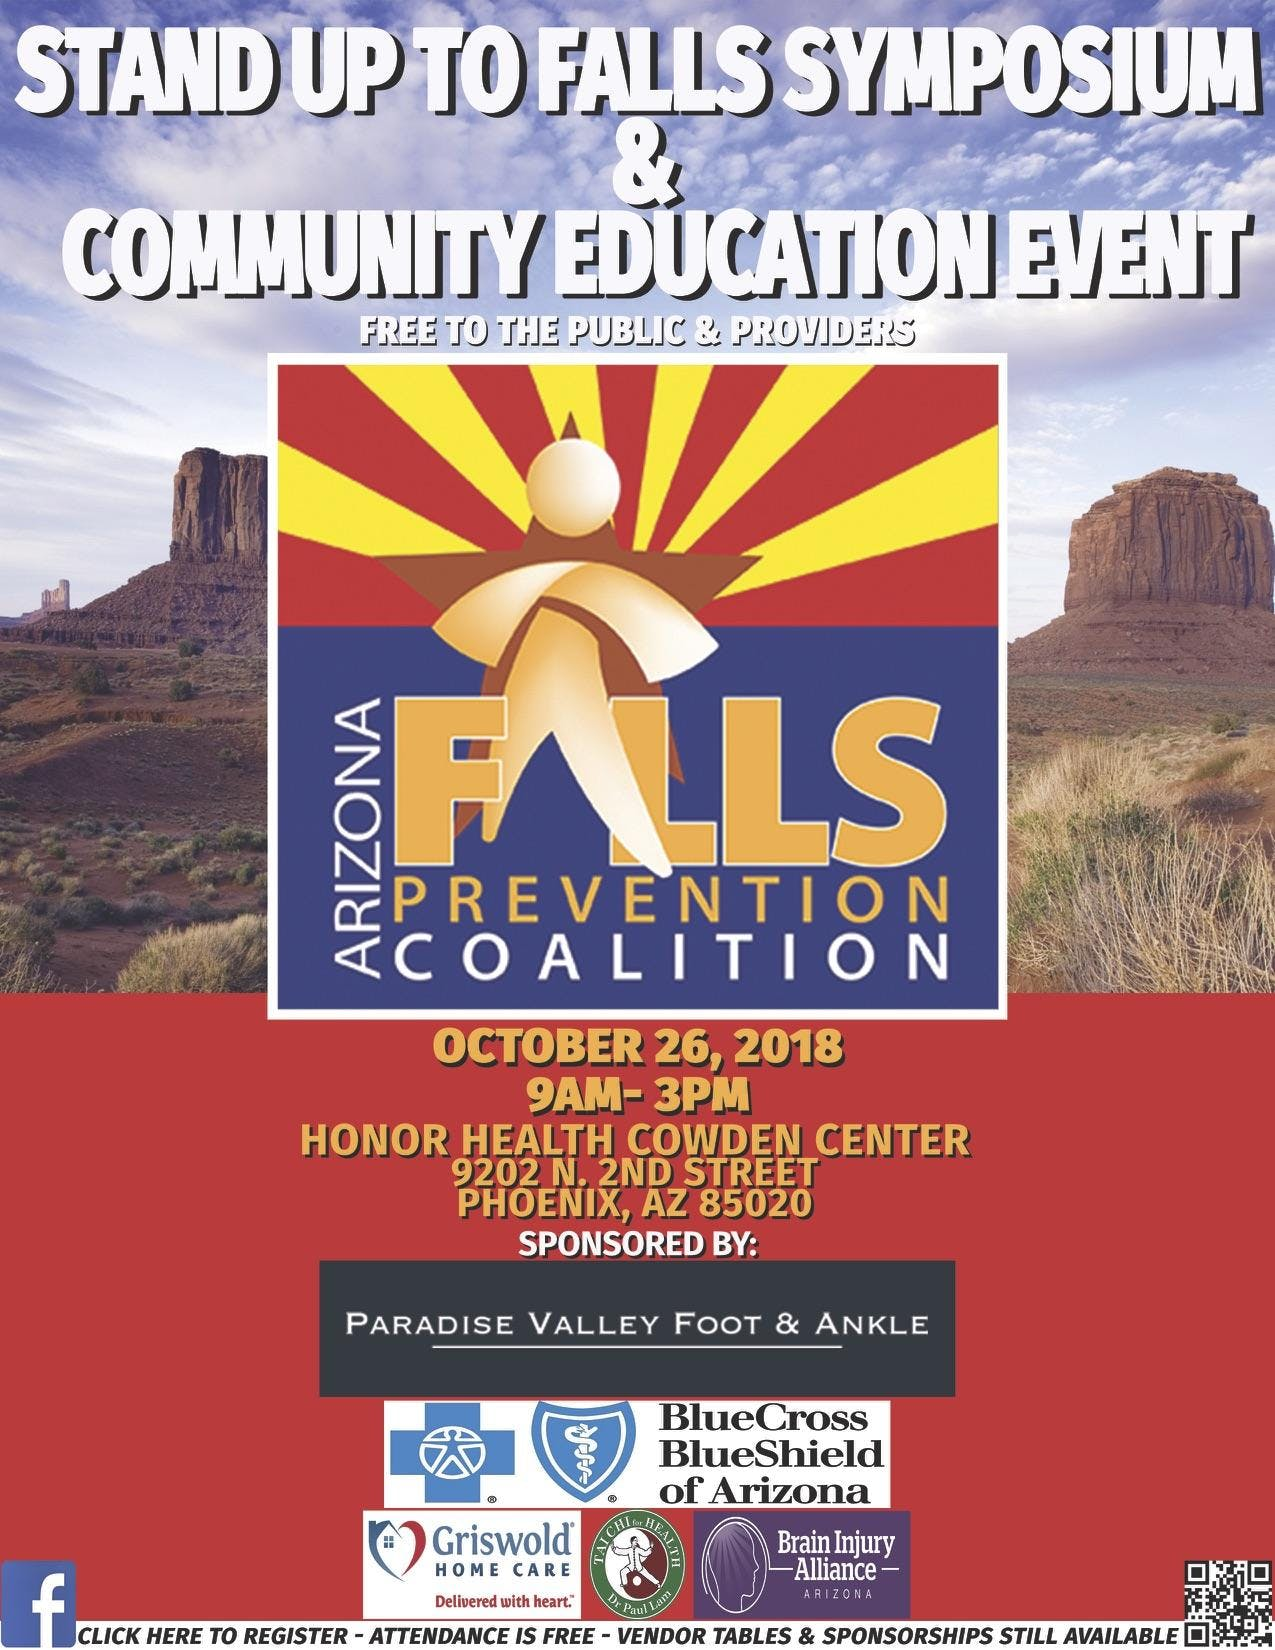 AFPC Stand Up To Falls Symposium & Community Event